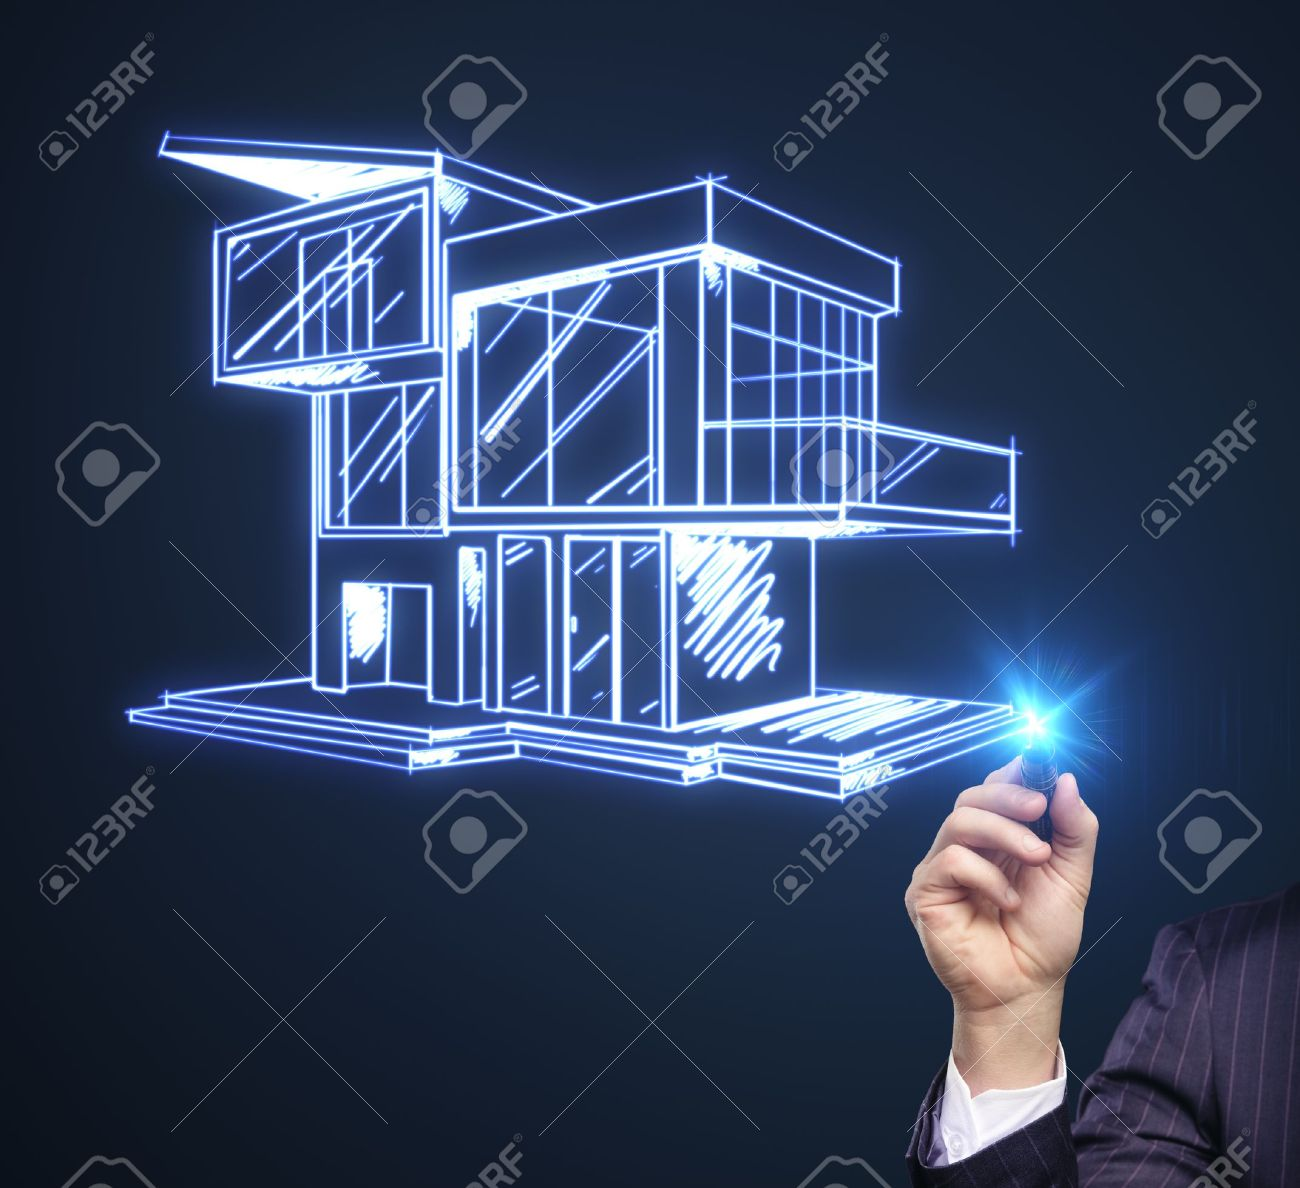 House Plan Stock Photos Images. oyalty Free House Plan Images nd ... - ^